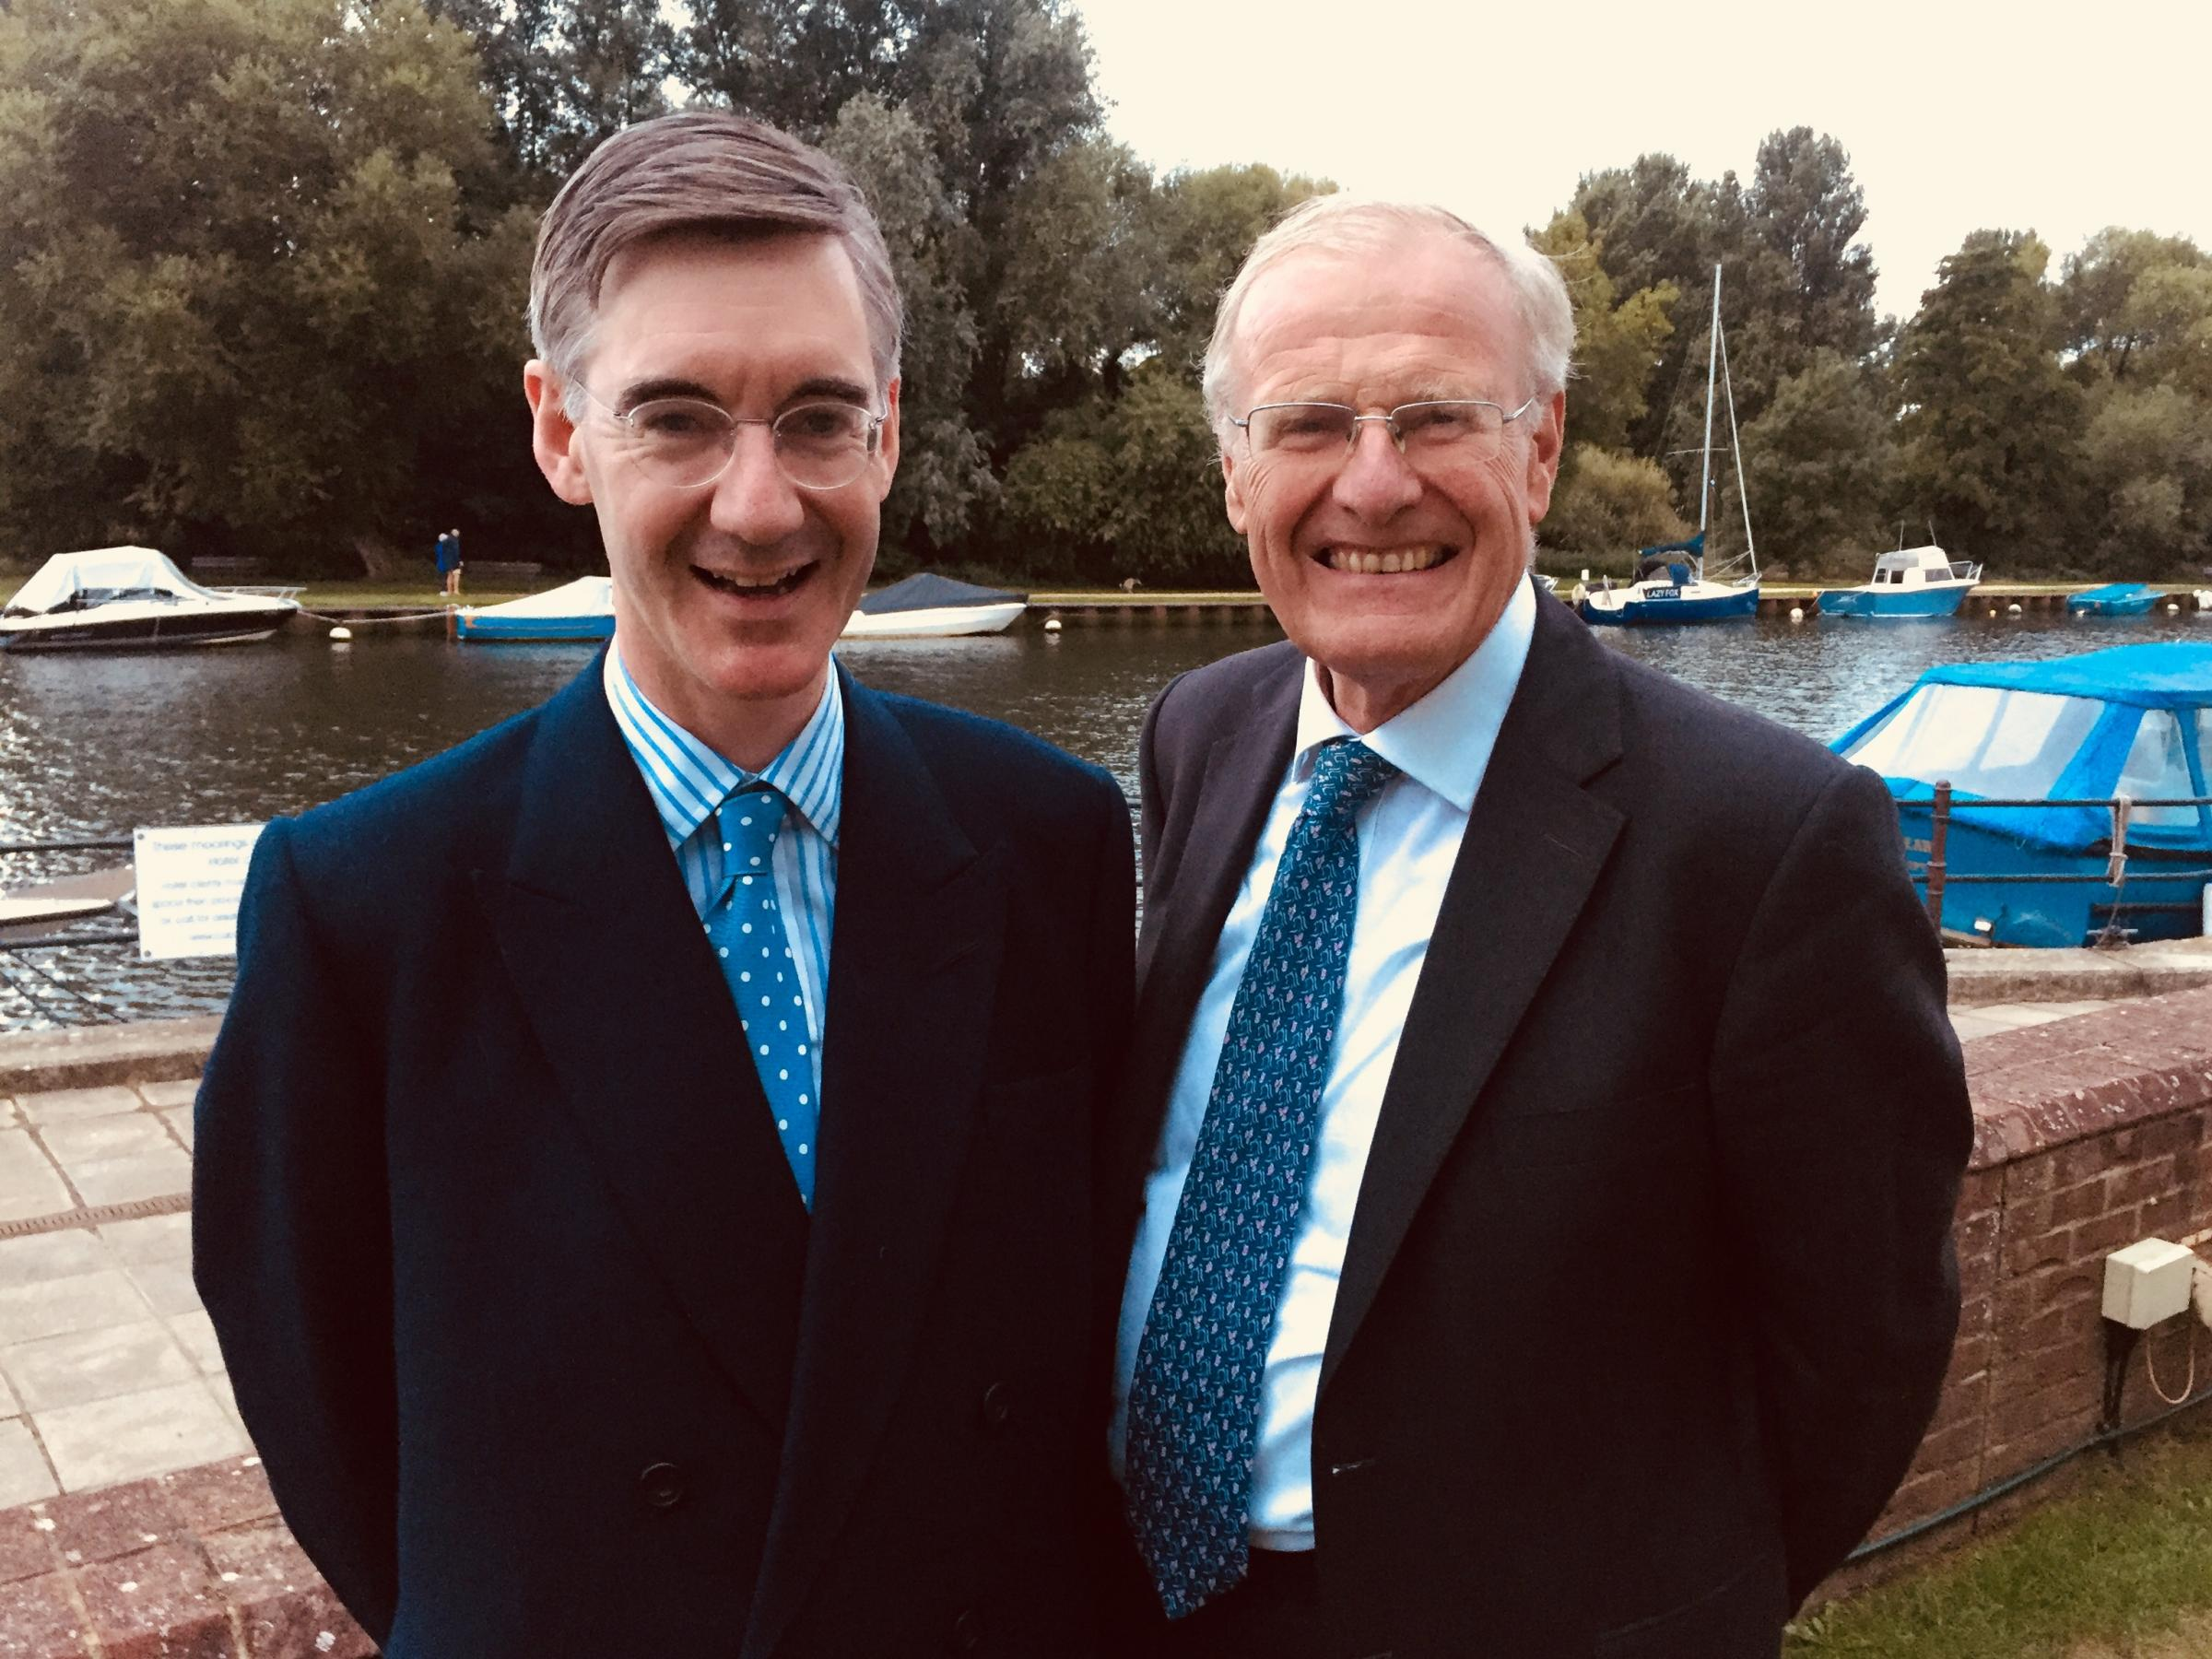 Conservative MPs Jacob Rees-Mogg and Sir Christopher Chope